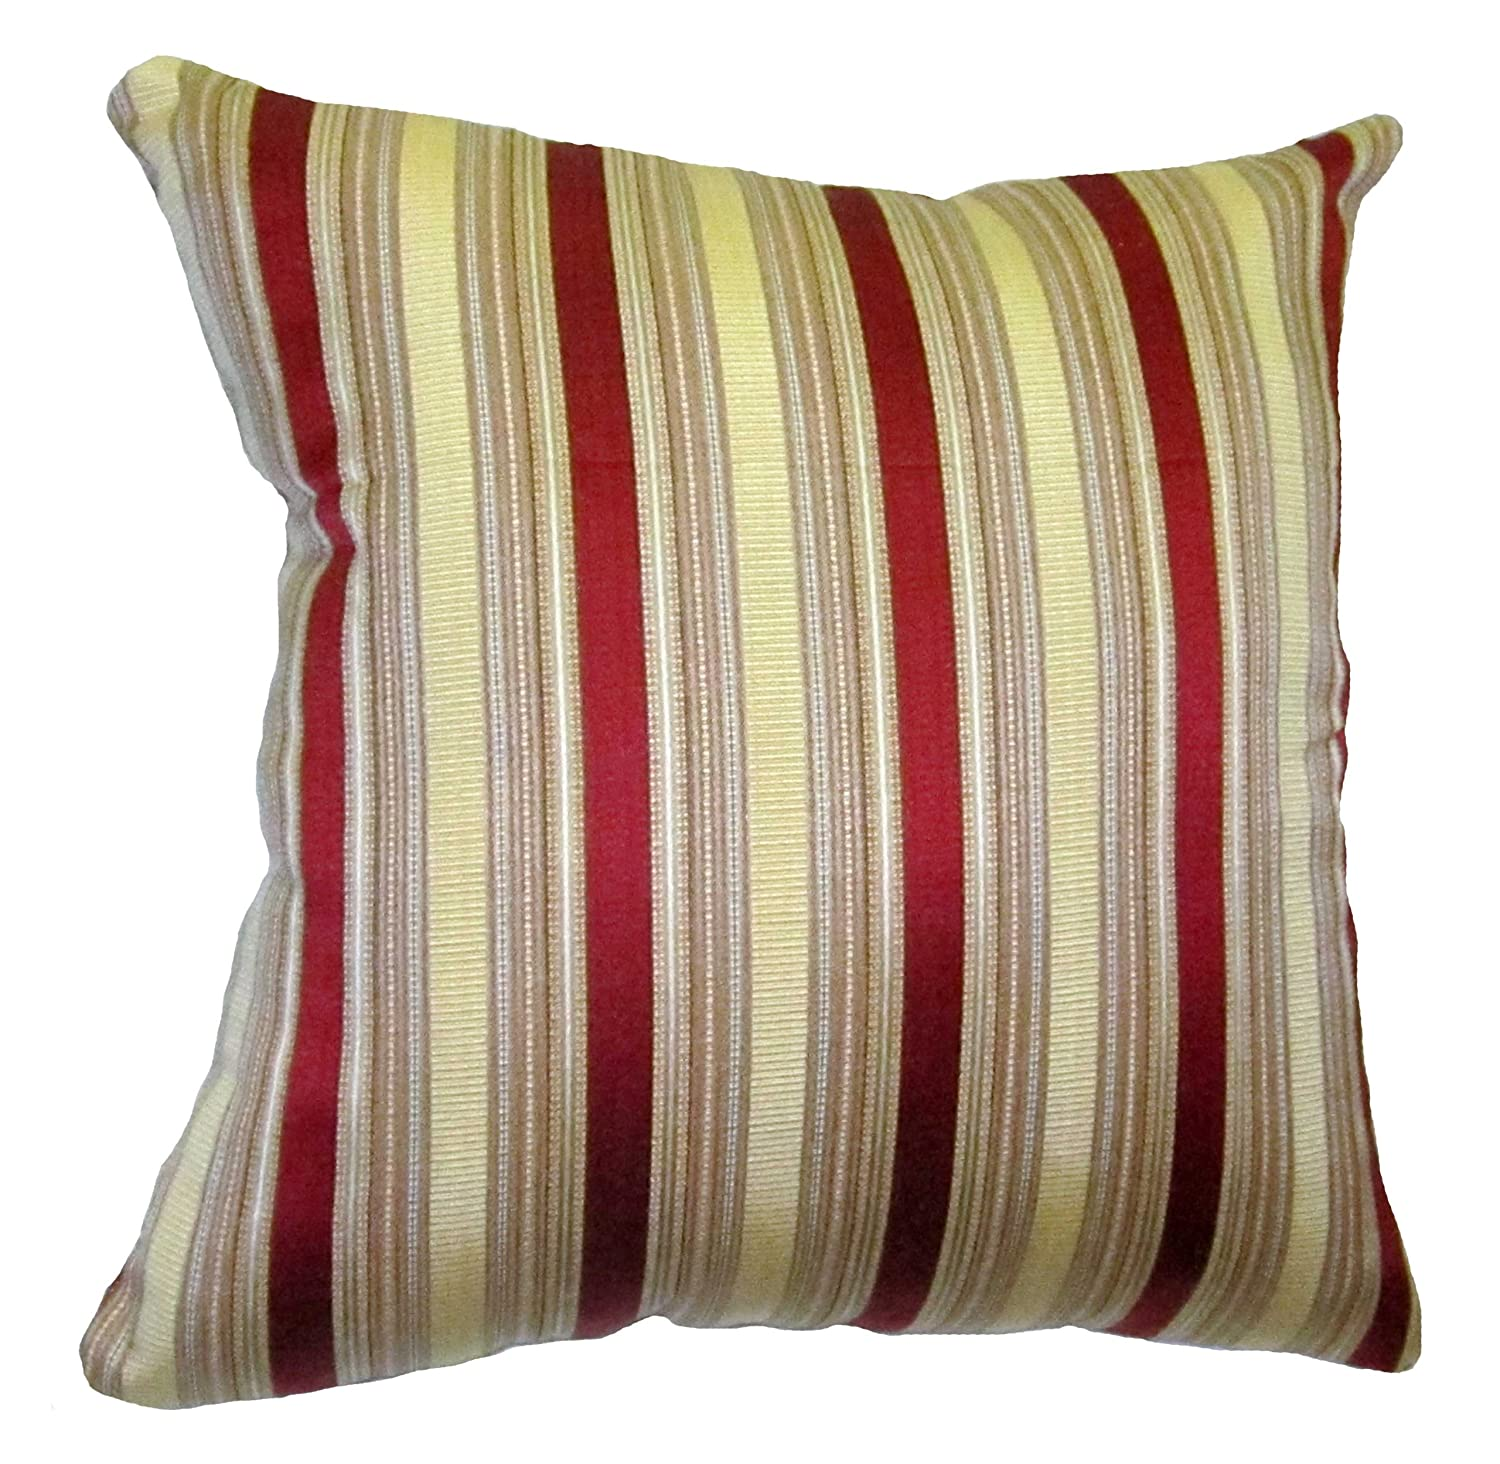 Amazon 24x24 Burgundy and Gold Stripes Brocade Decorative